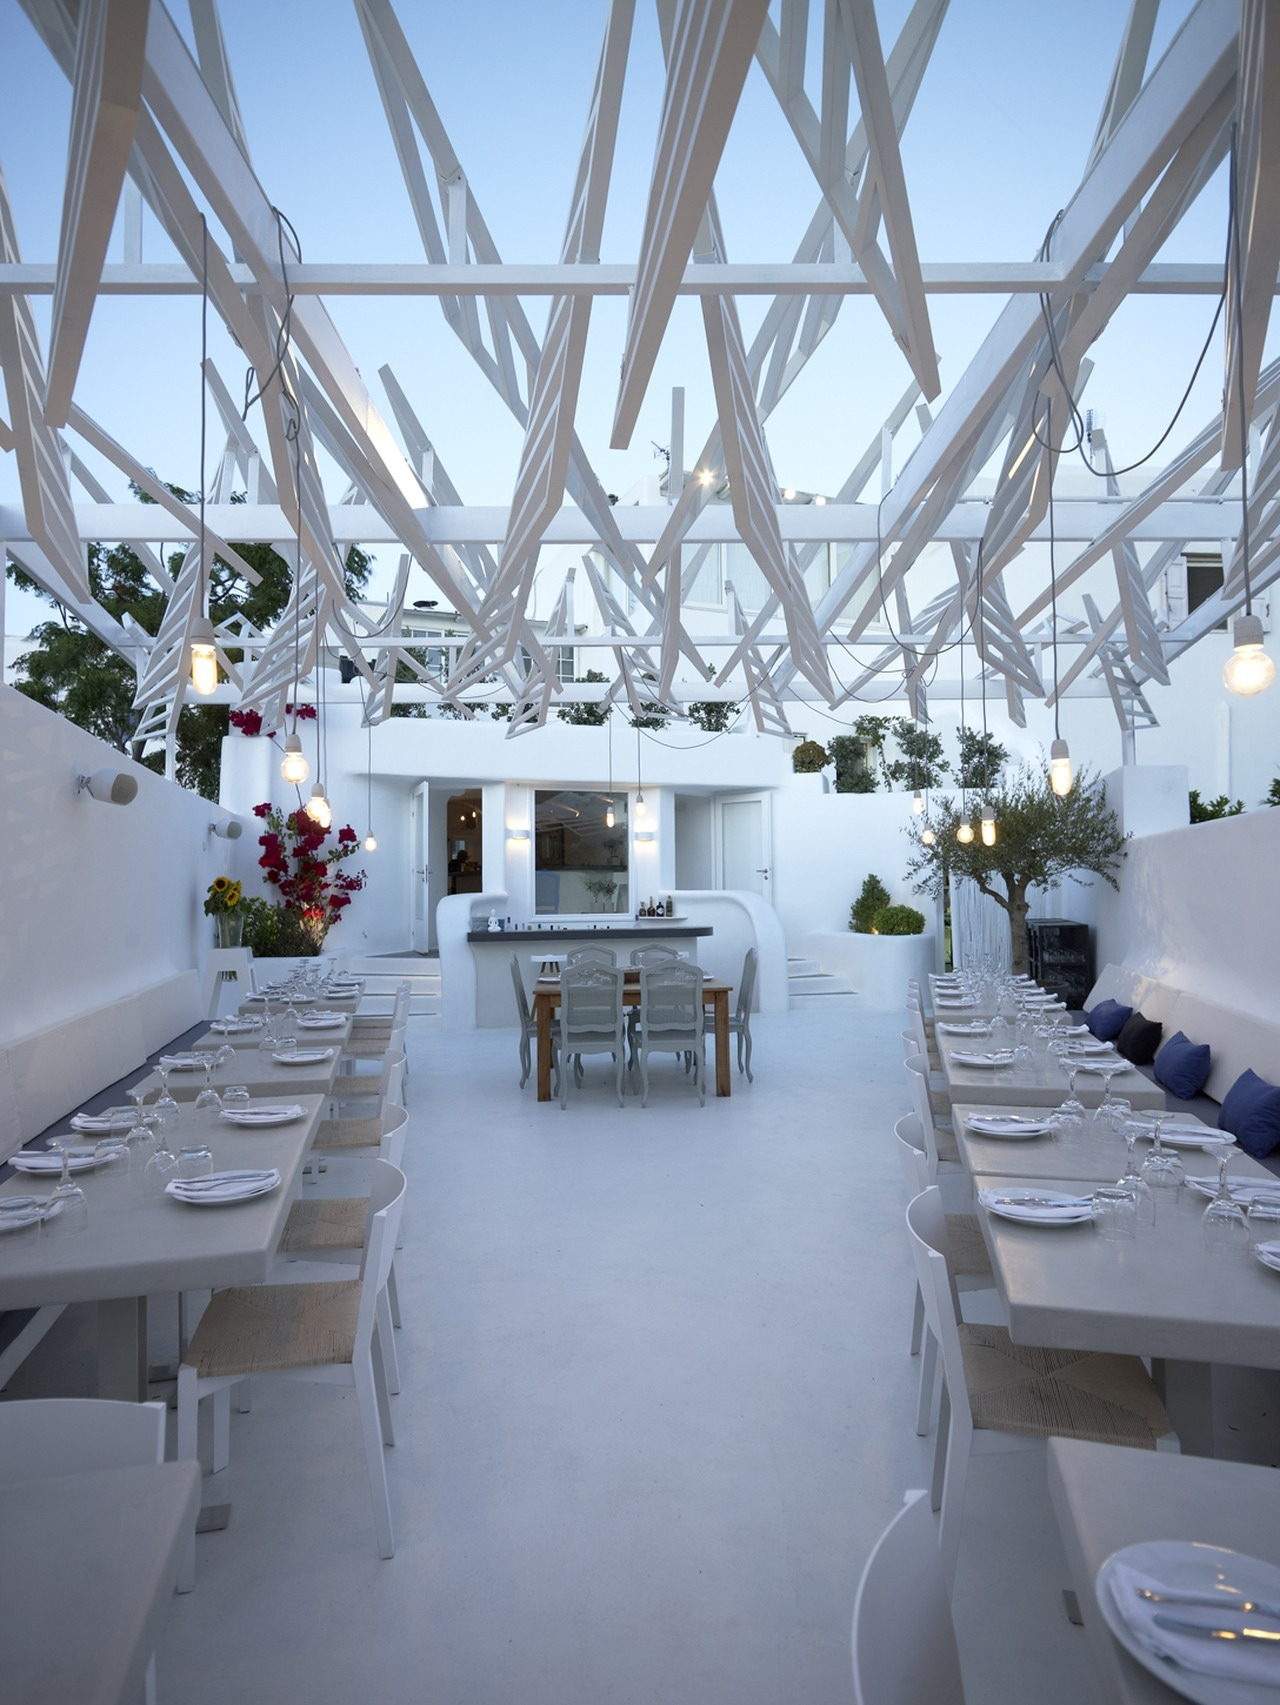 Phos restaurant in mykonos town by lm architects karmatrendz